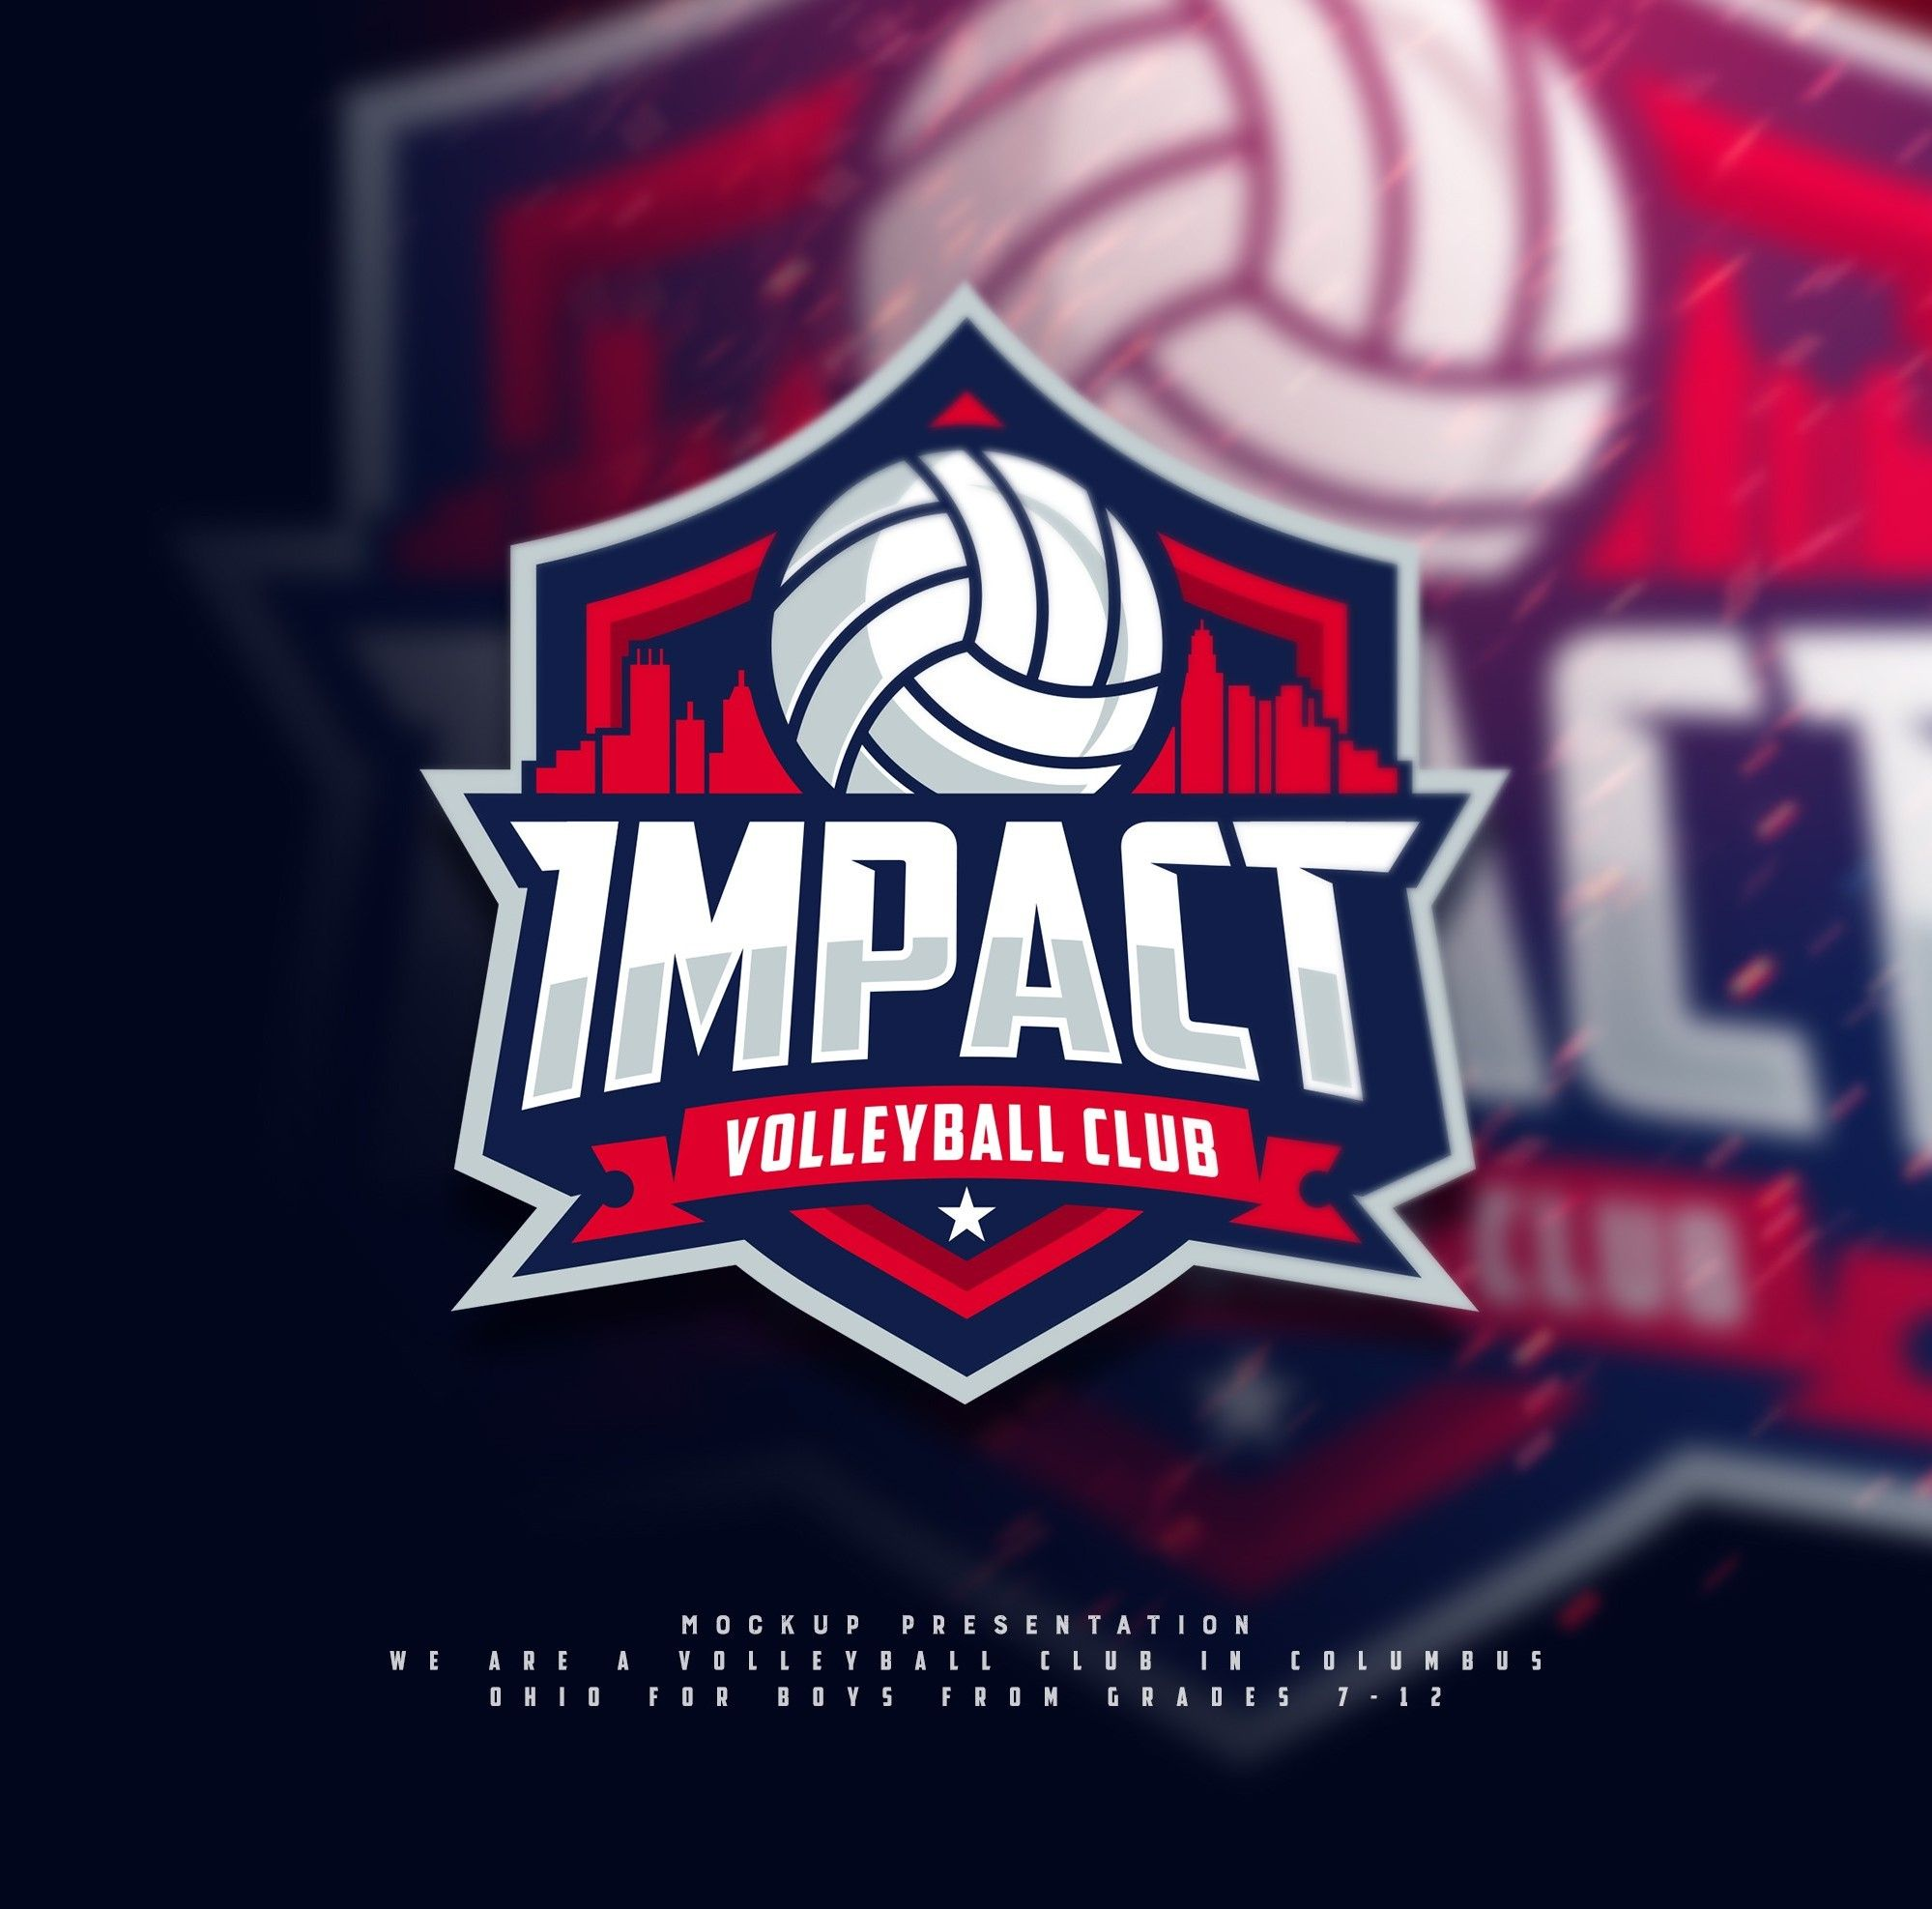 Logo Design For A Volleyball Club In Columbus Ohio For Boys From Grades 7 12 Logo Branding Business Sta Volleyball Designs Startup Infographic Logo Design